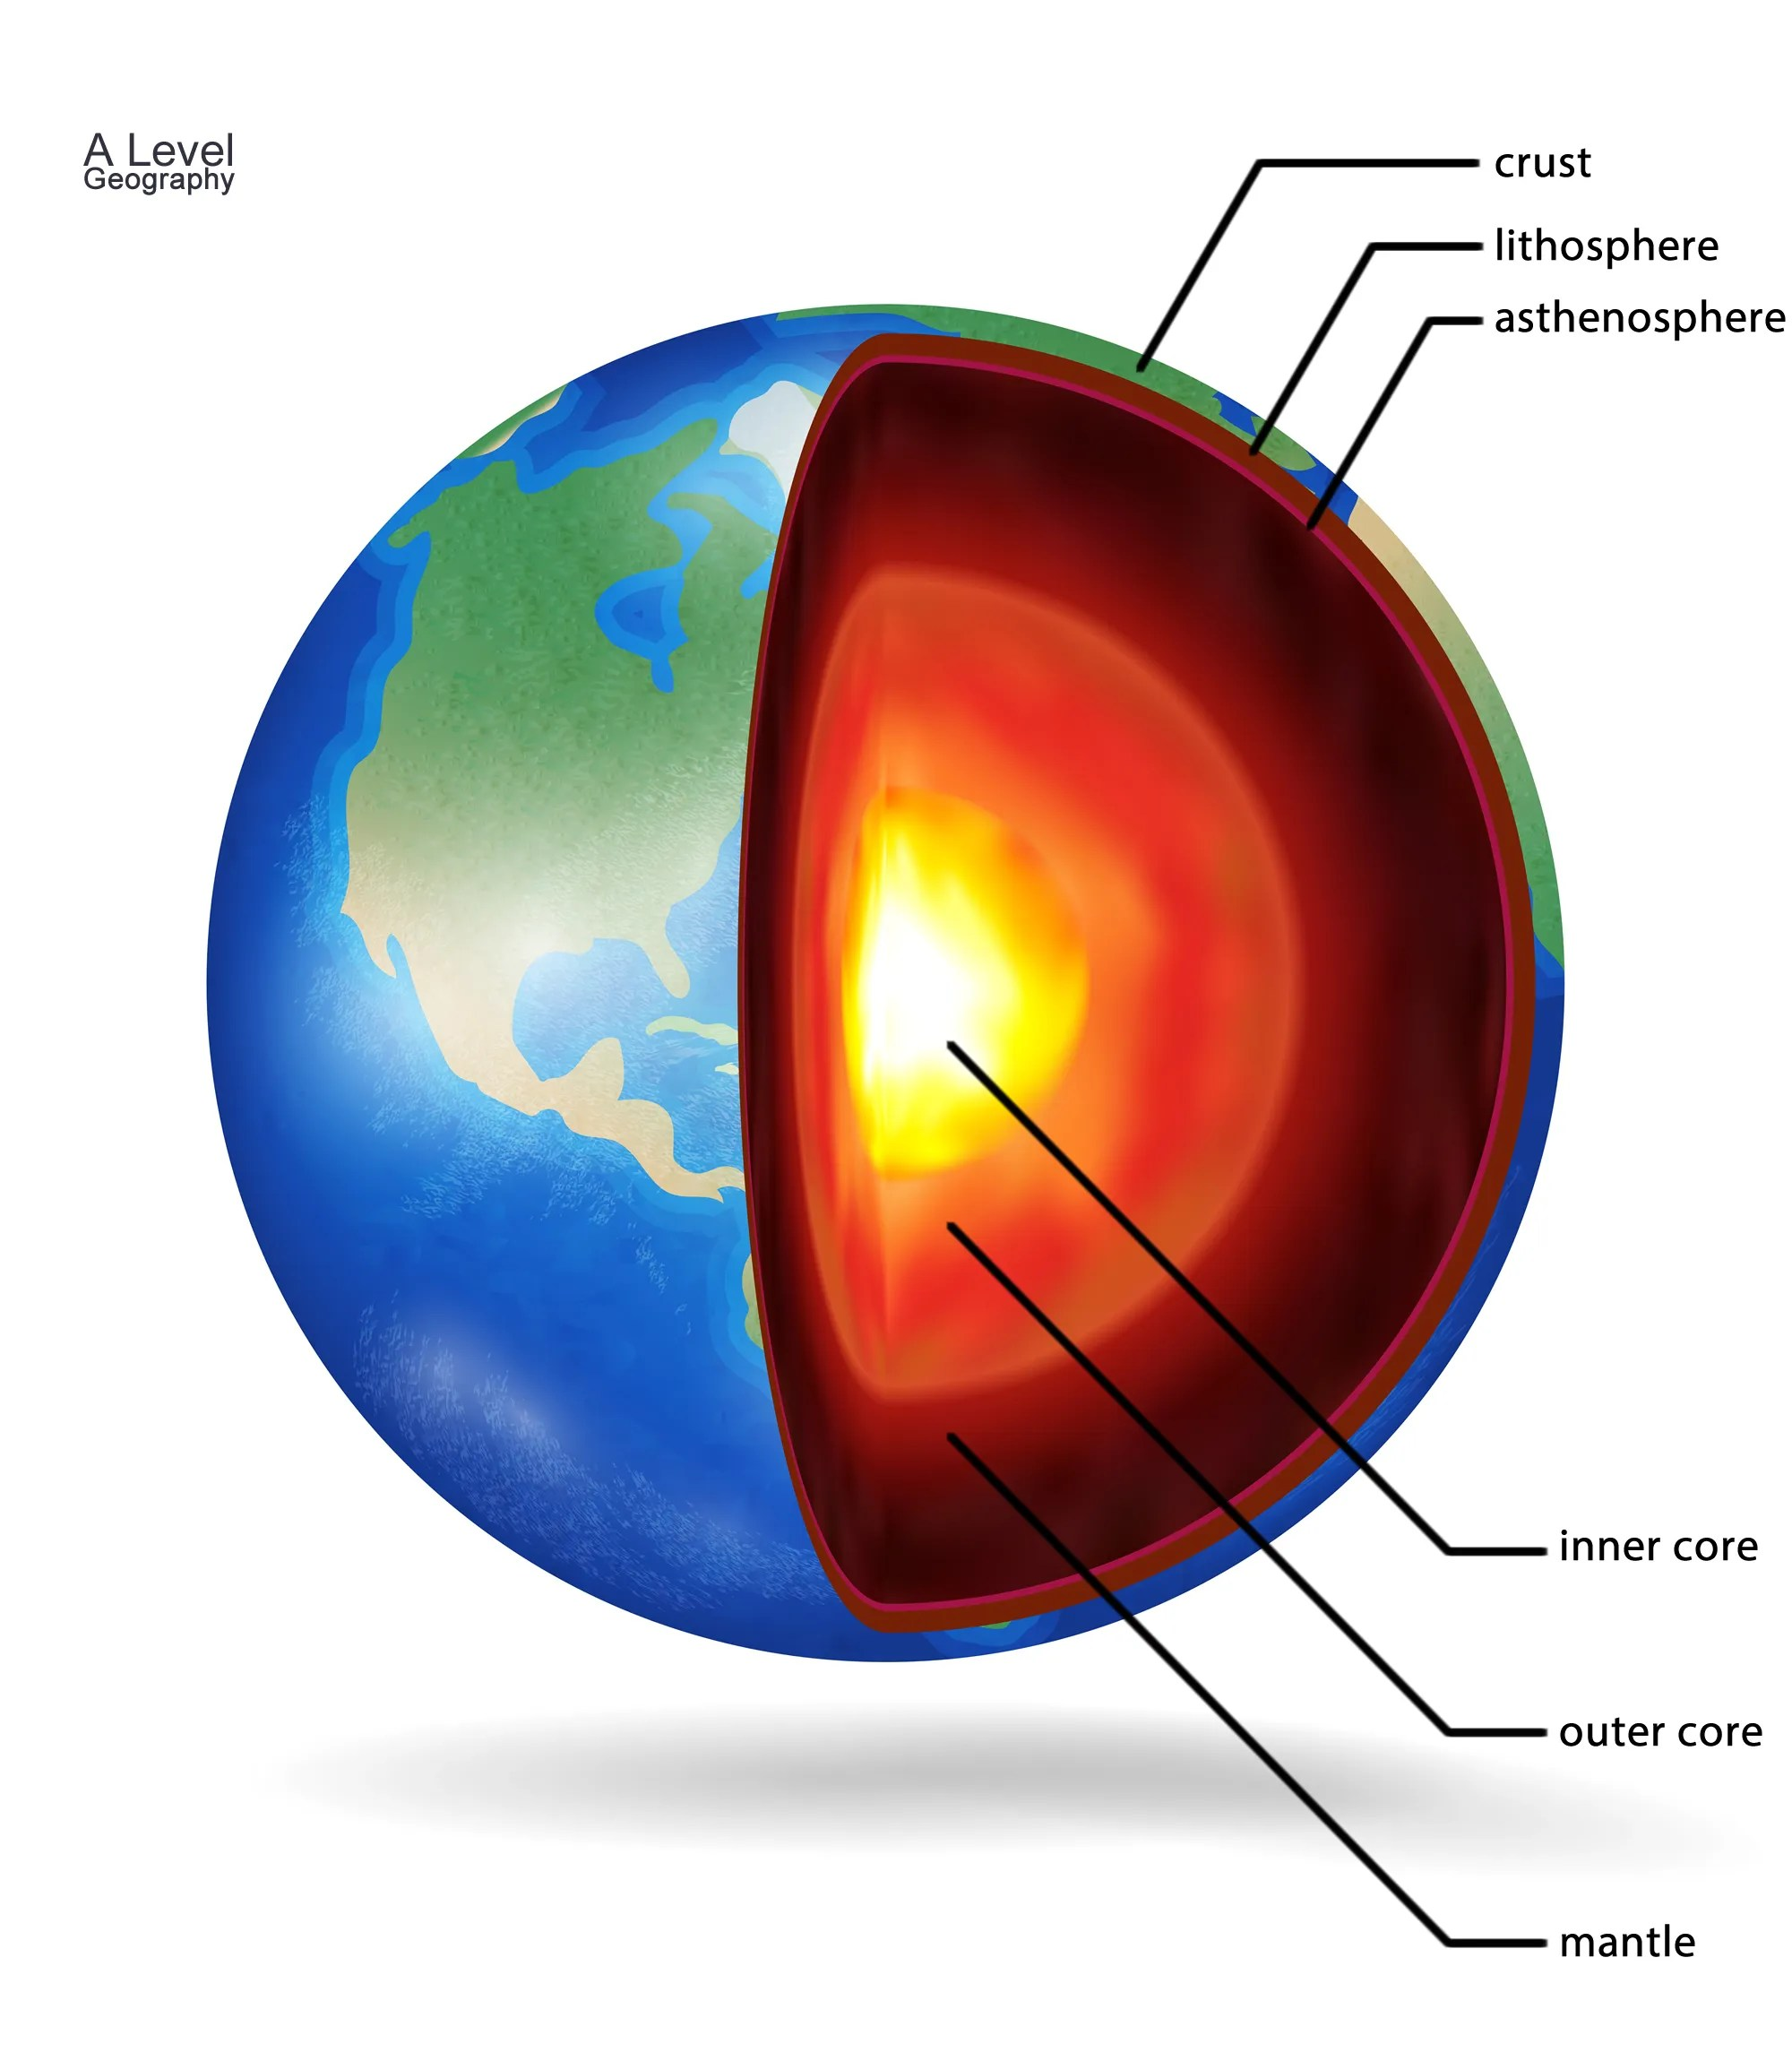 hight resolution of structure of the earth a level geographythe structure of the earth diagram